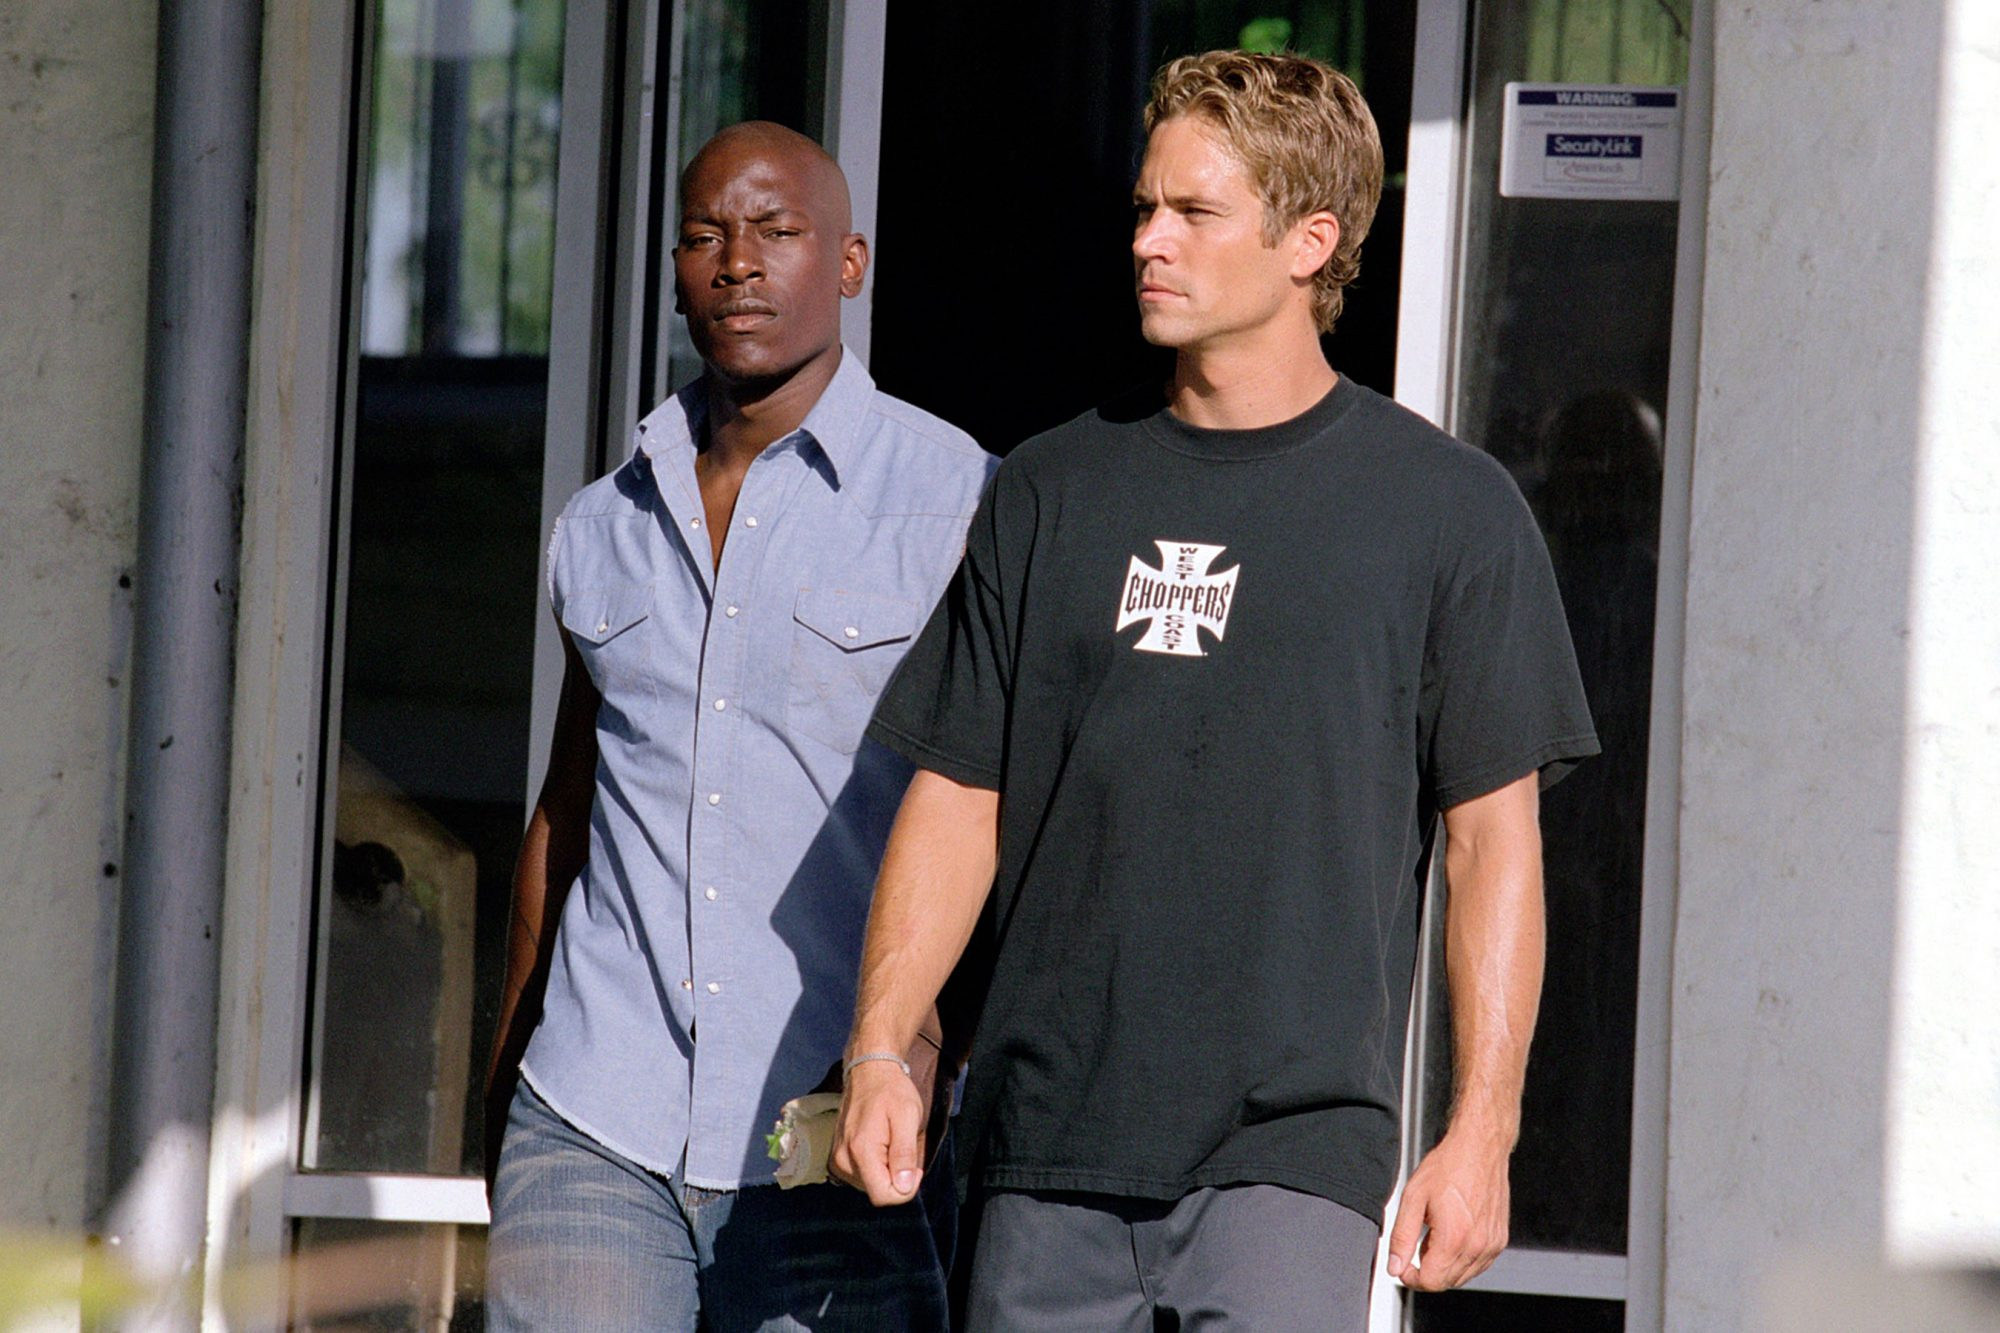 2 FAST 2 FURIOUS, Tyrese Gibson, Paul Walker,  2003, (c) Universal/courtesy Everett Collection